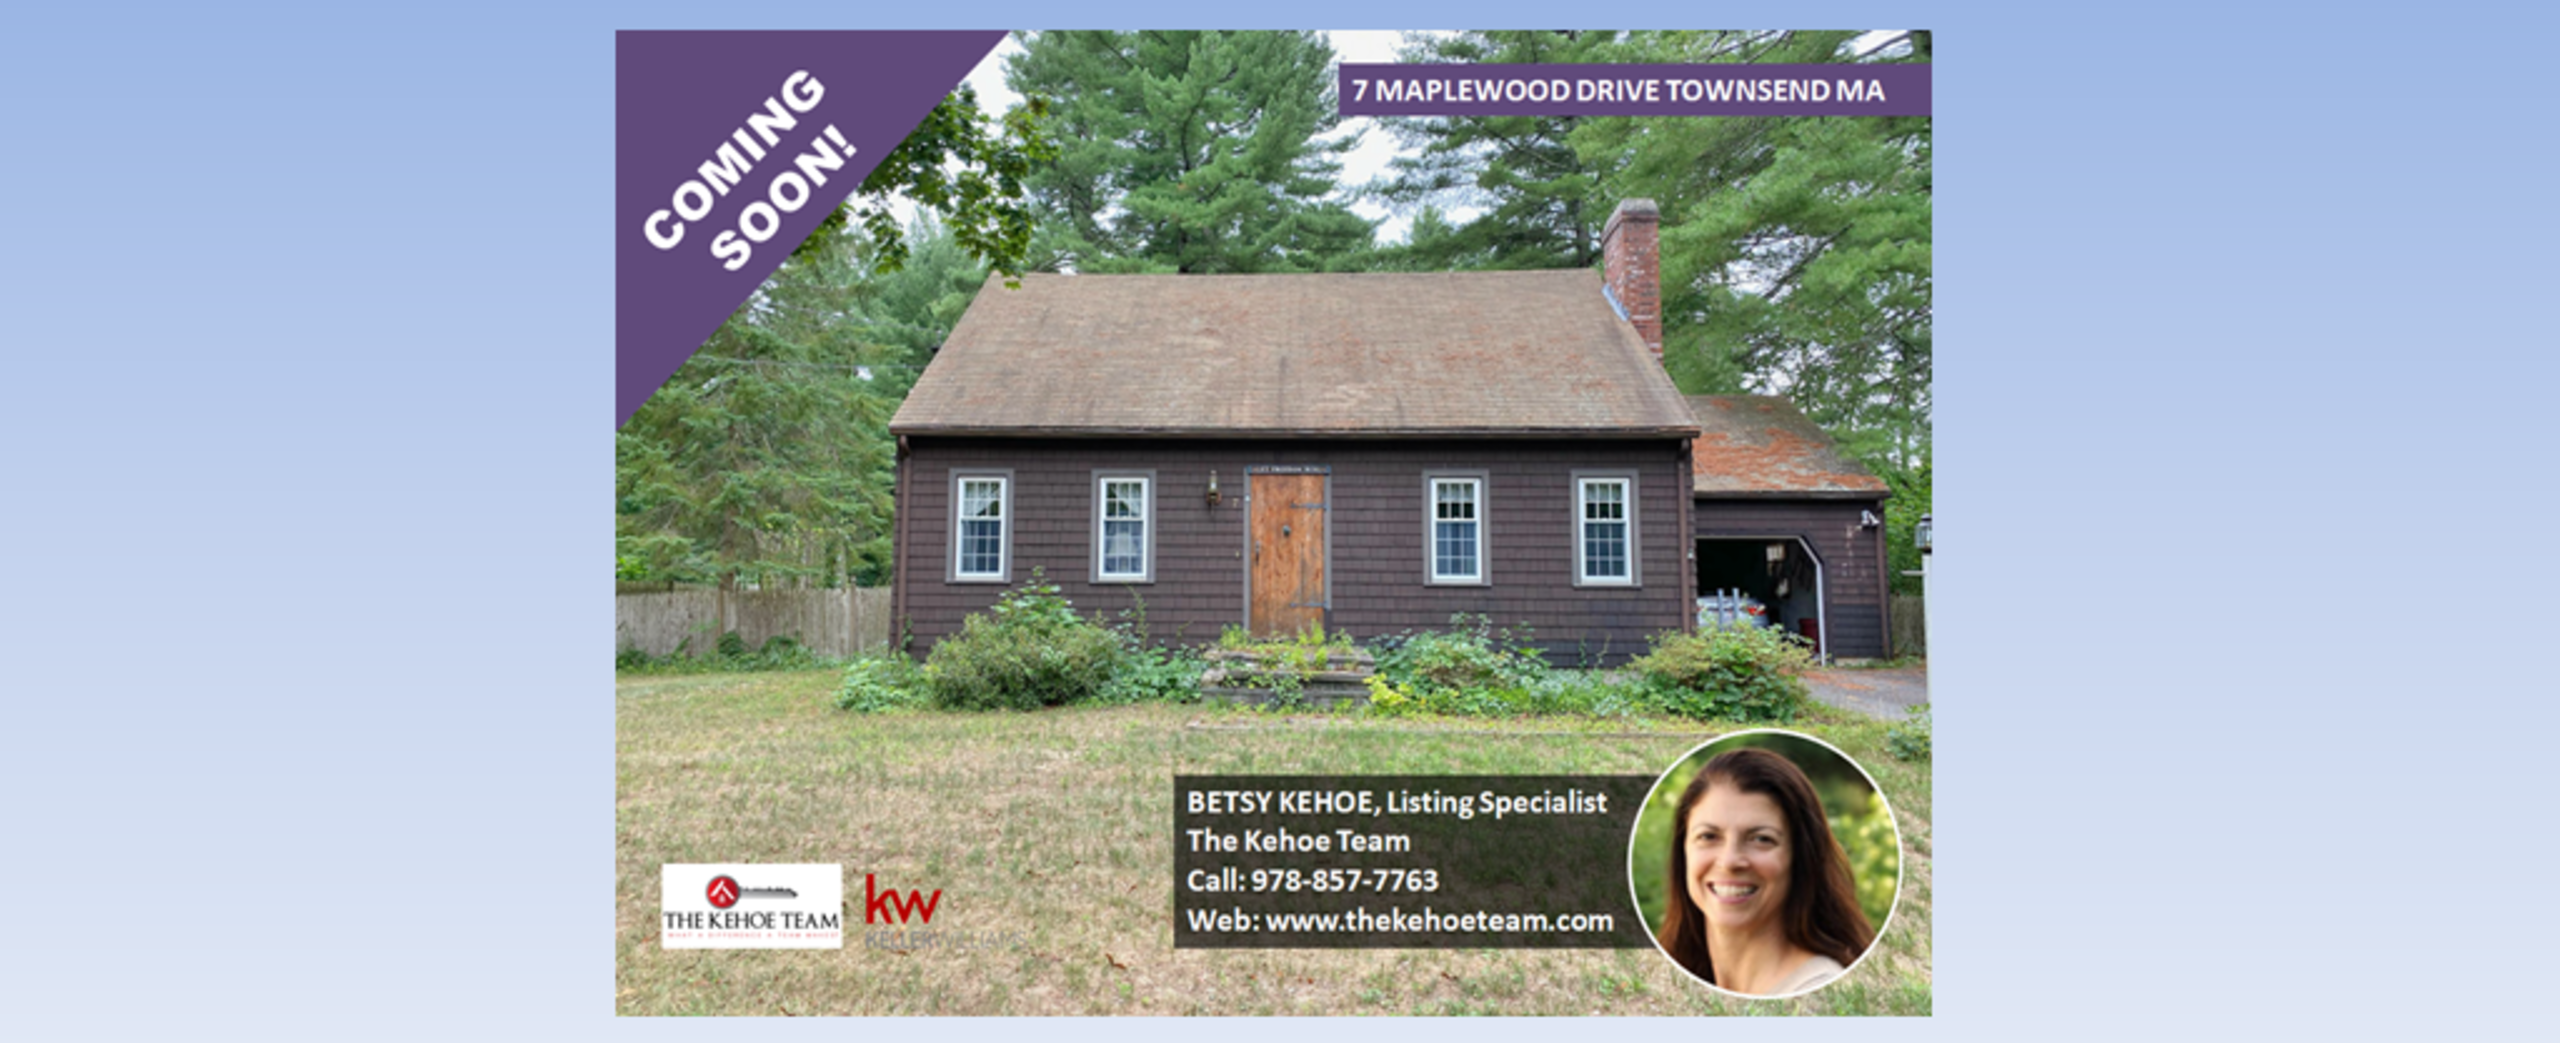 COMING SOON - 7 MAPLEWOOD DRIVE TOWNSEND MA